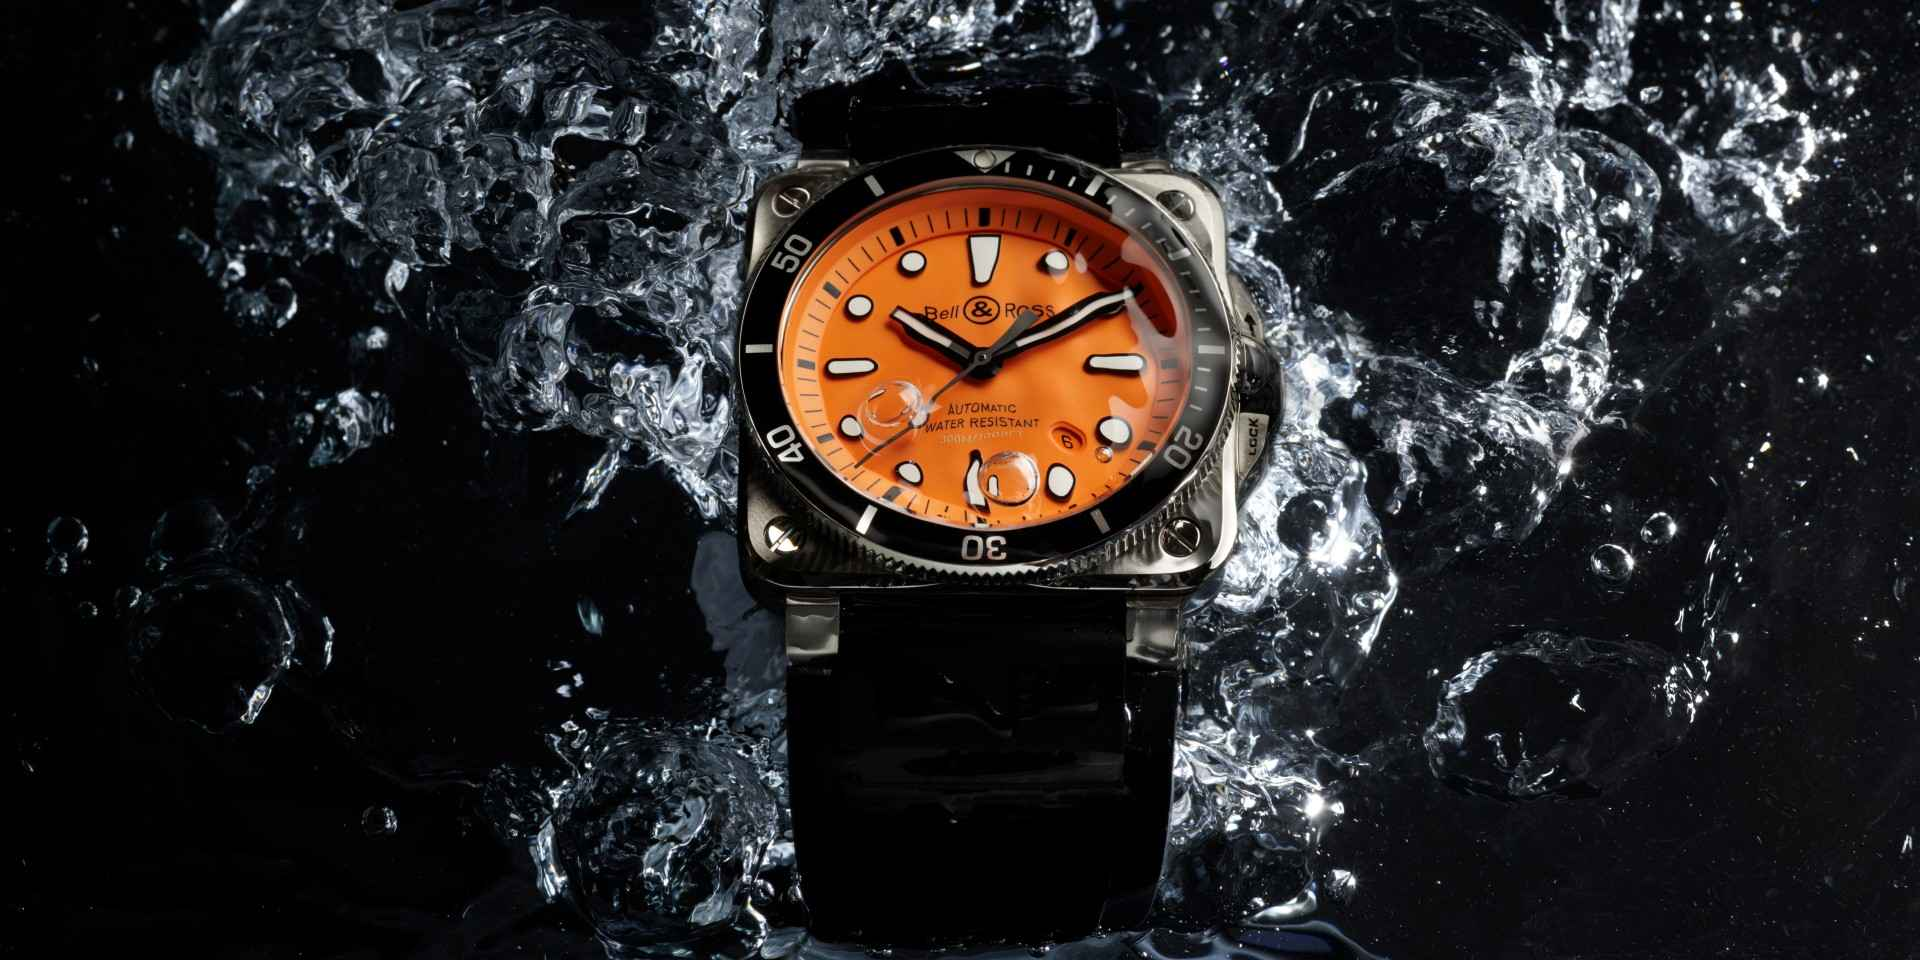 心想是「橙」:Bell & Ross BR 03-92 DIVER ORANGE 限量錶